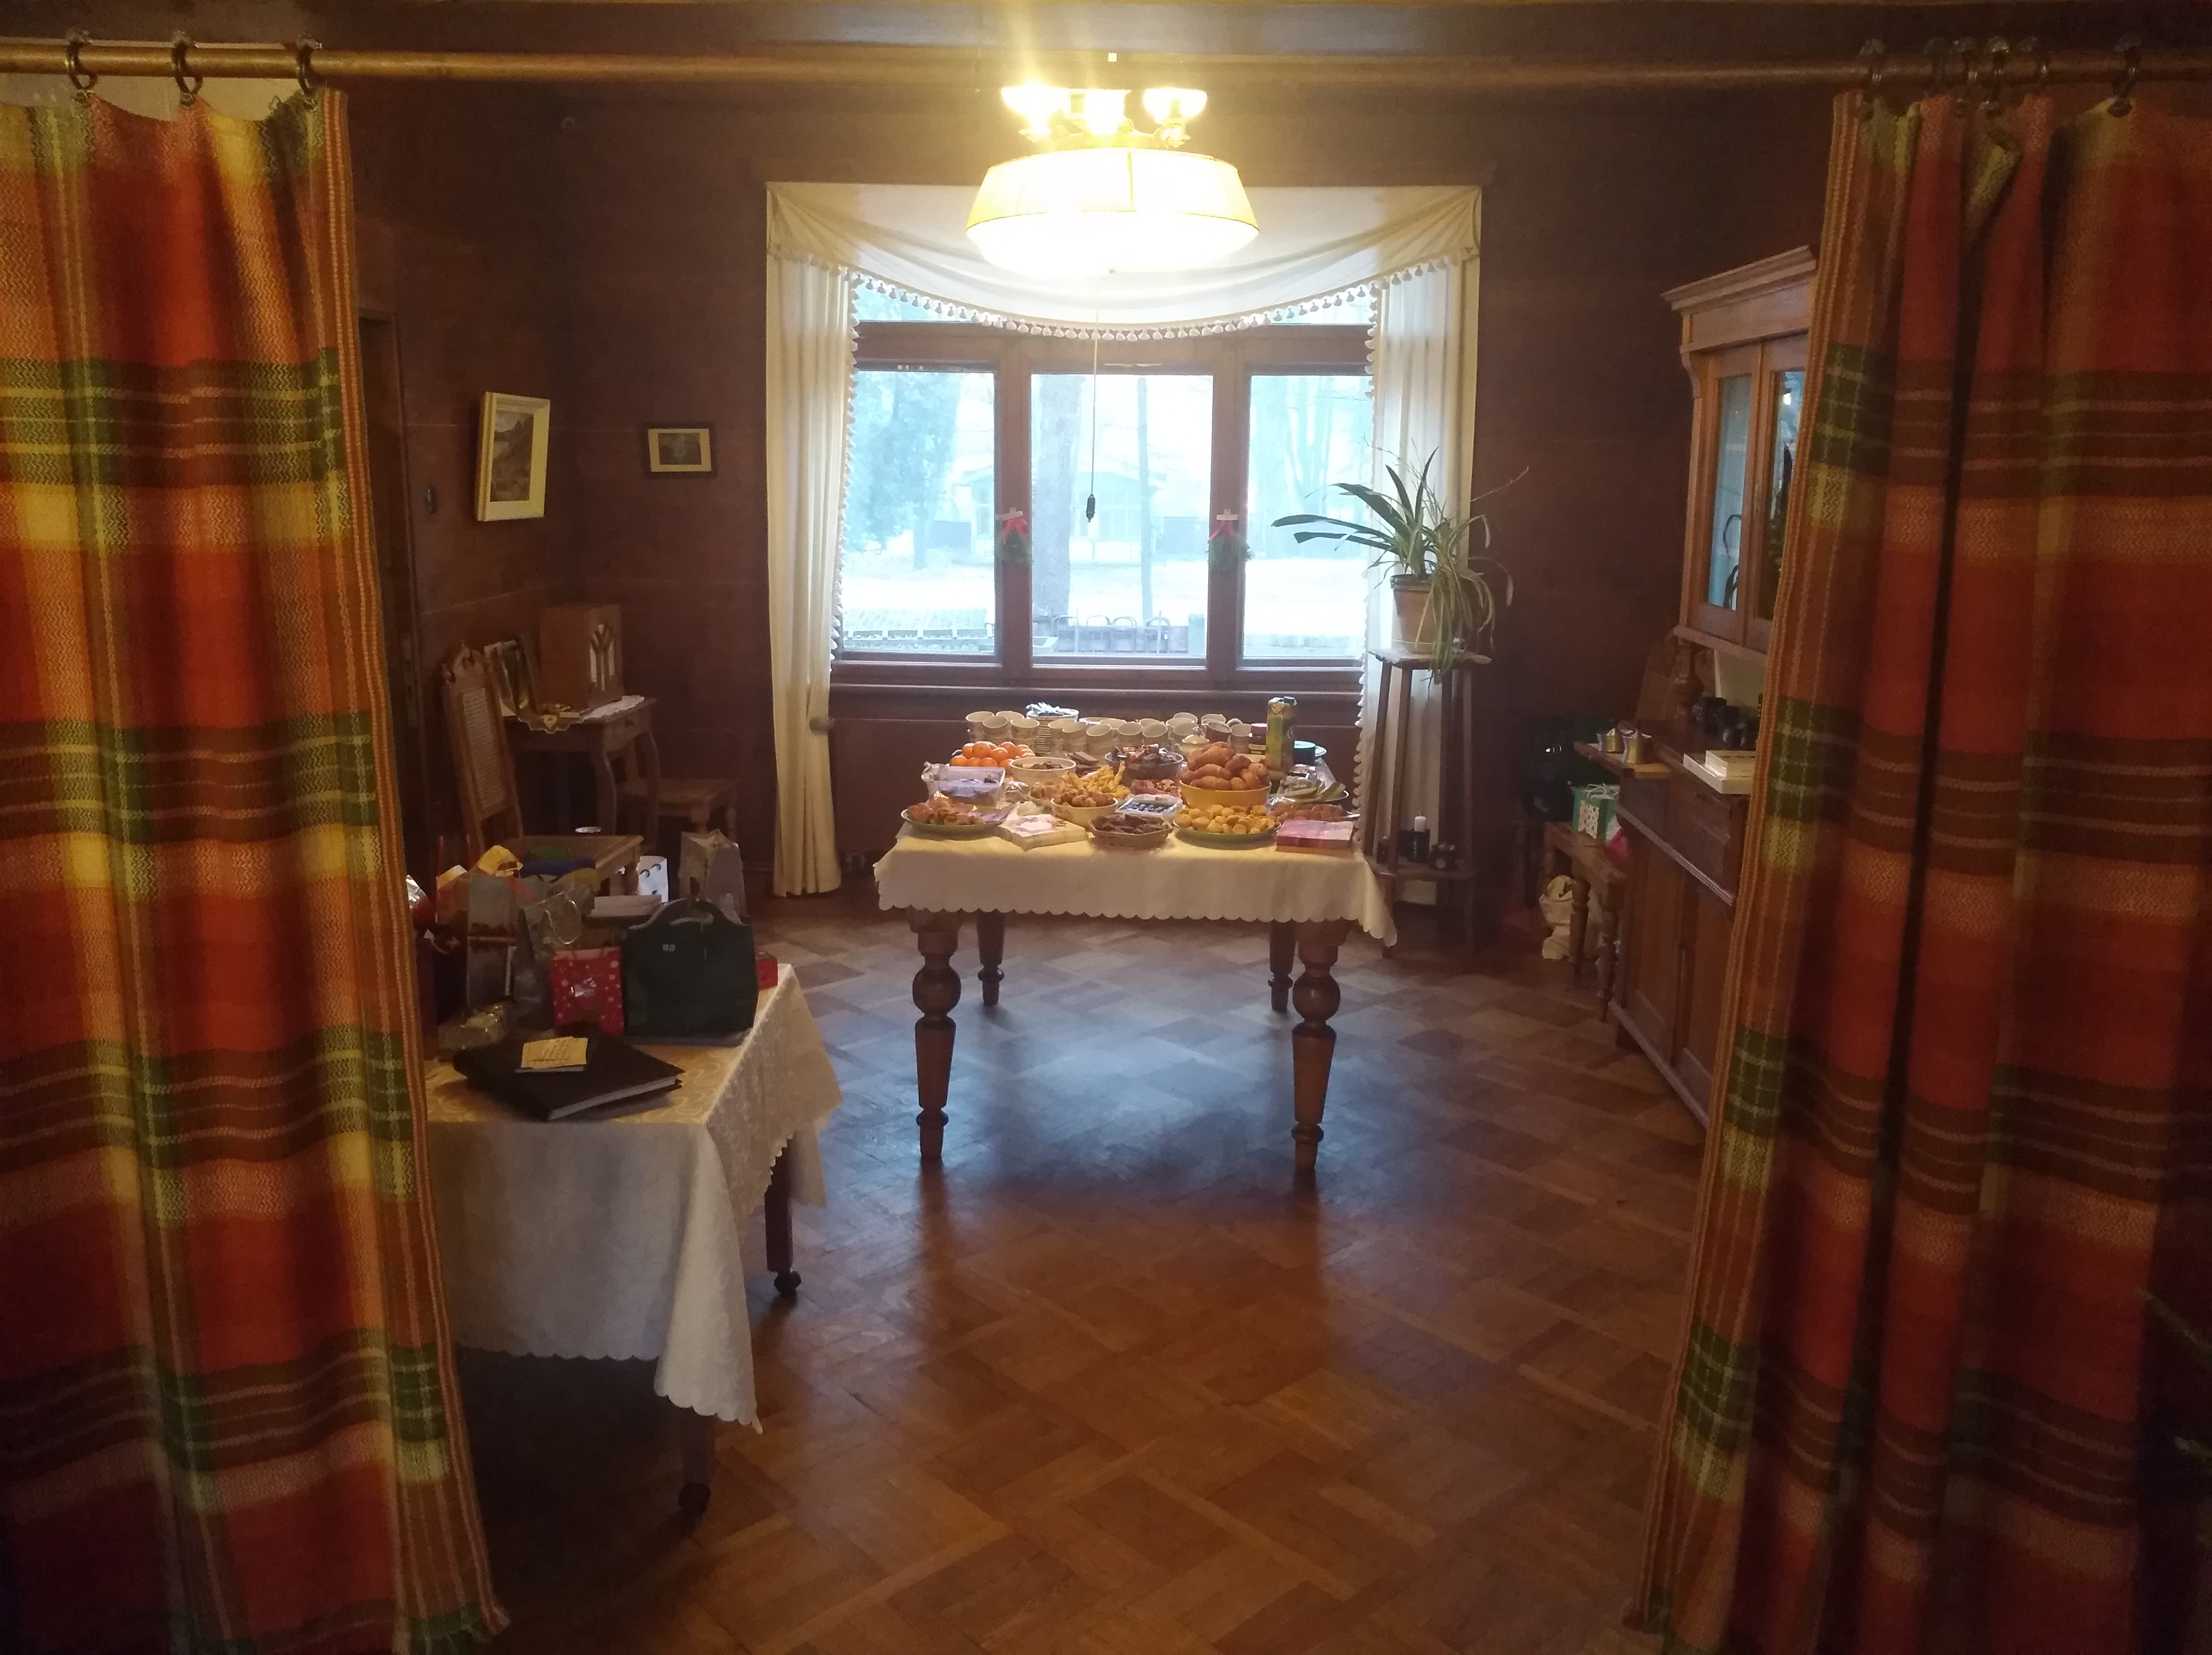 Janis Akuraters Museum - art nouveau private experience in Riga